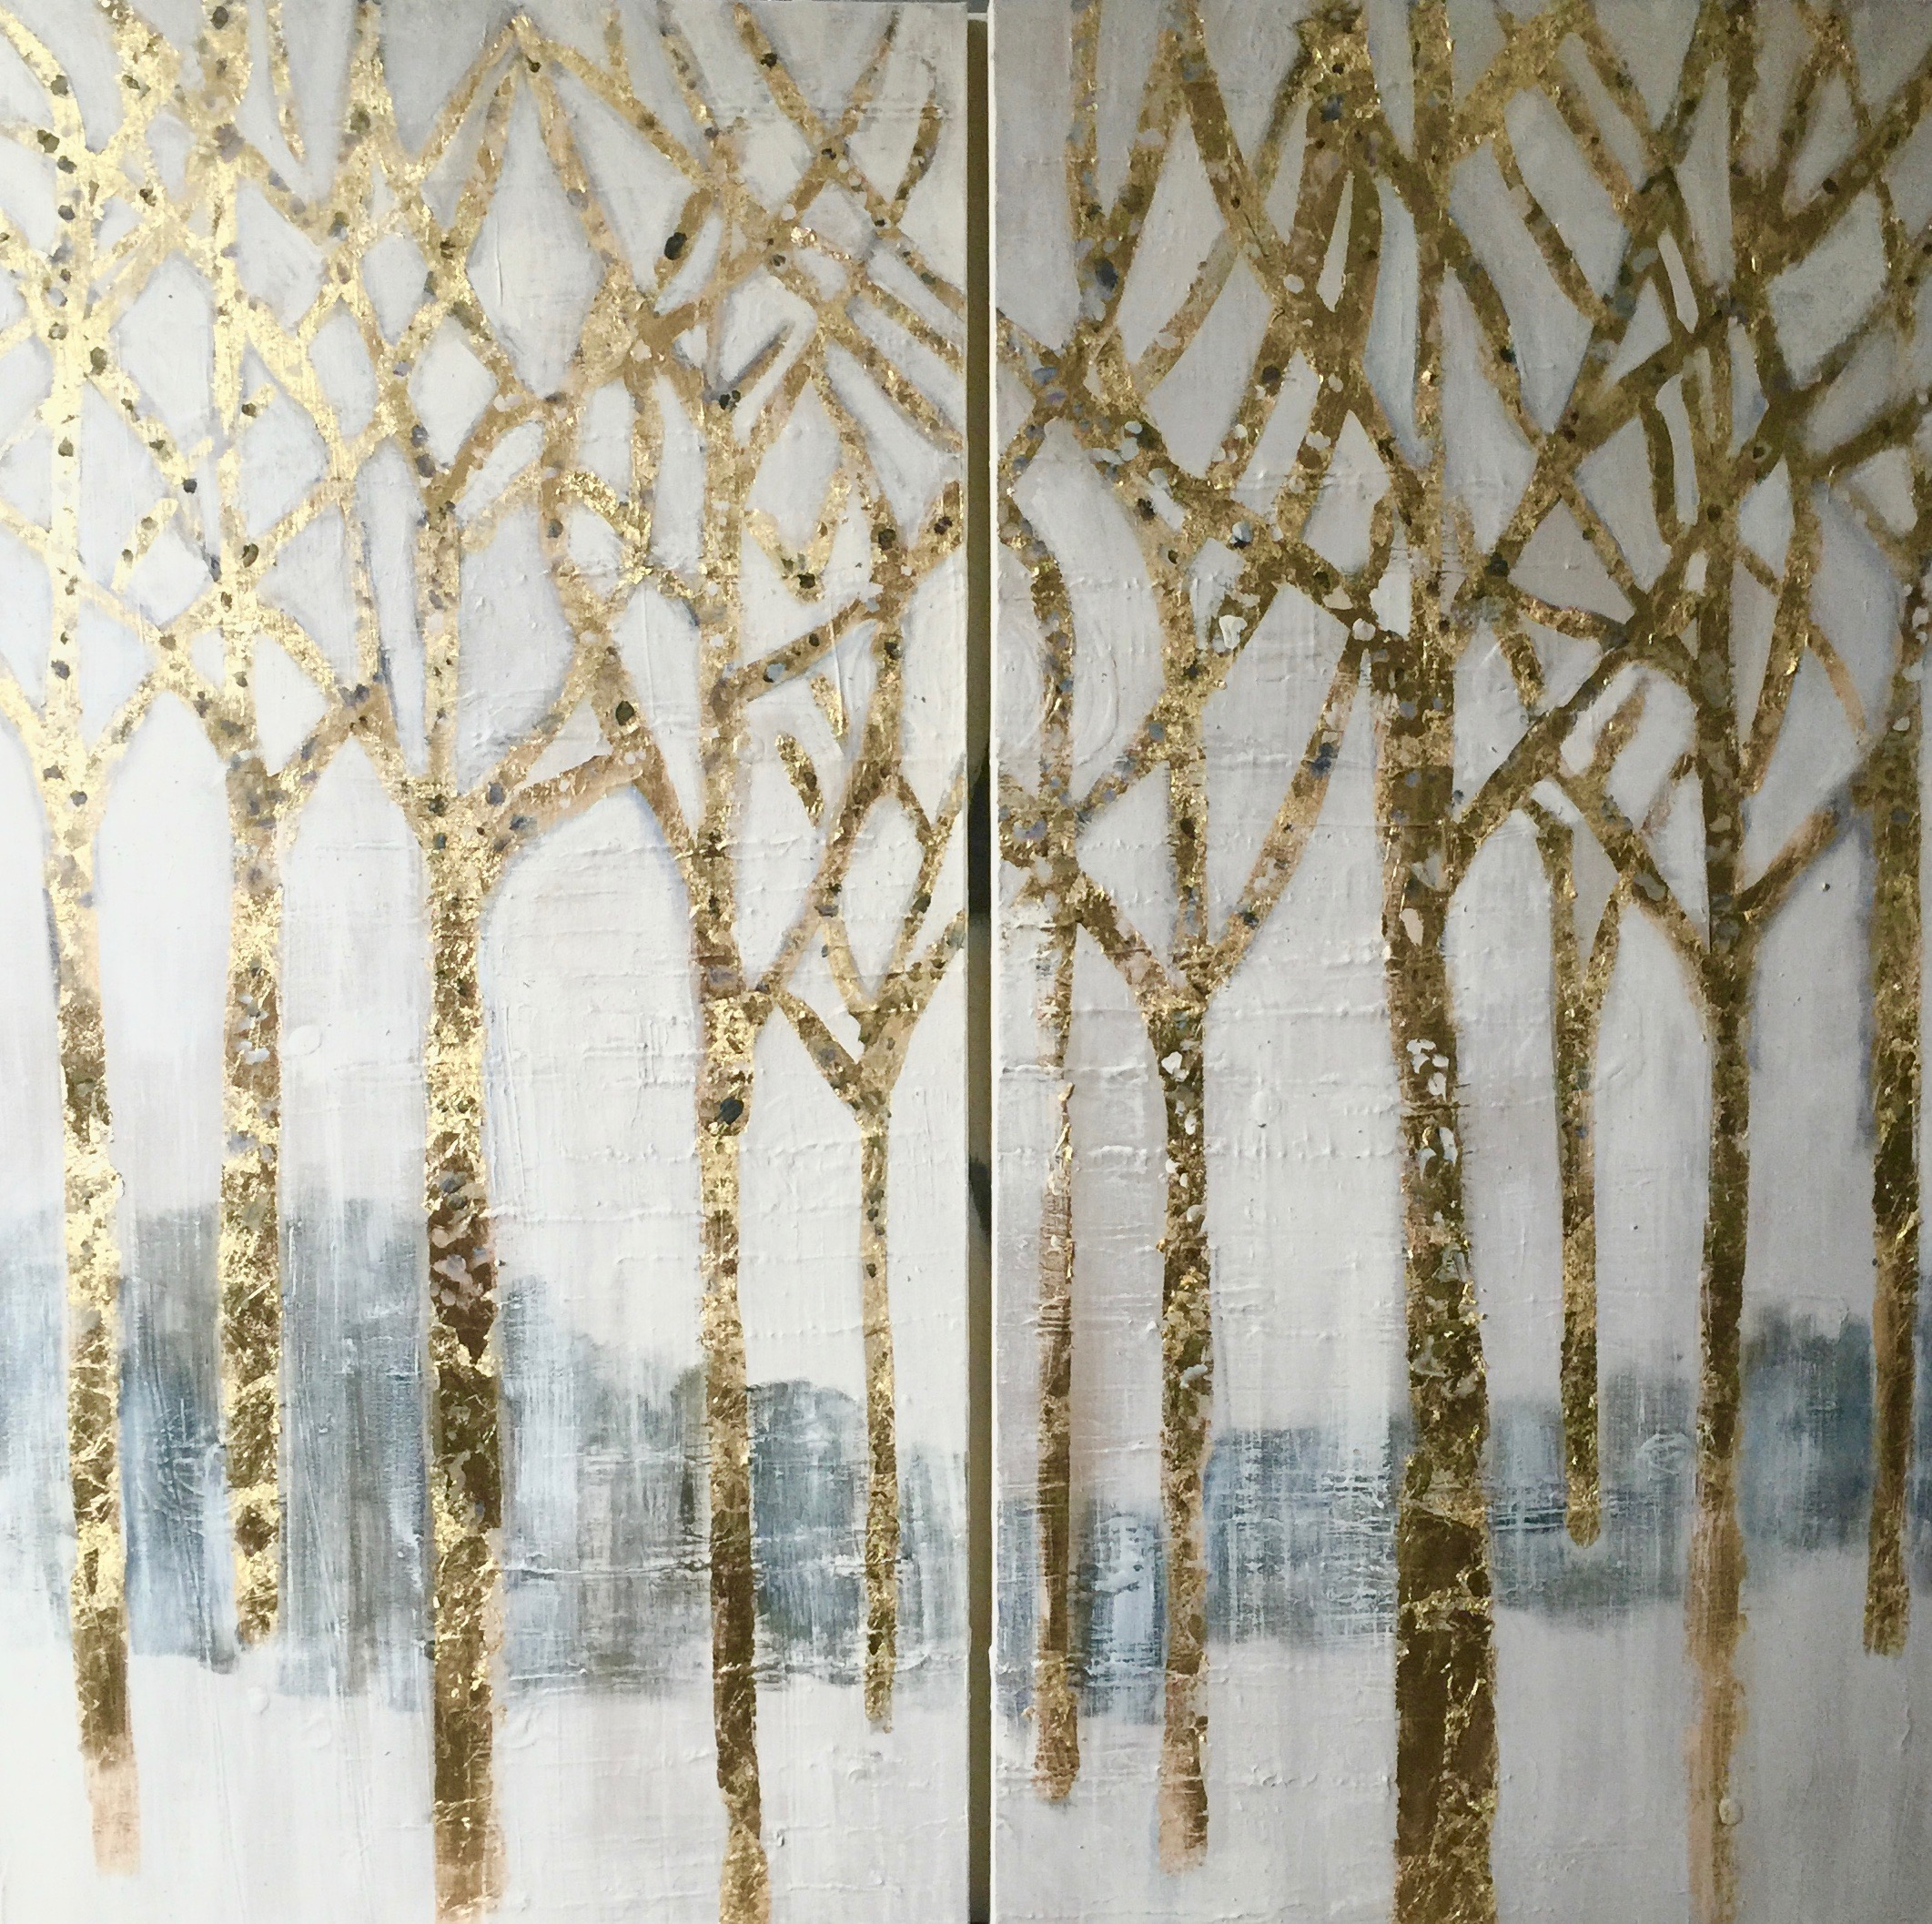 Title: Enchanted Trees